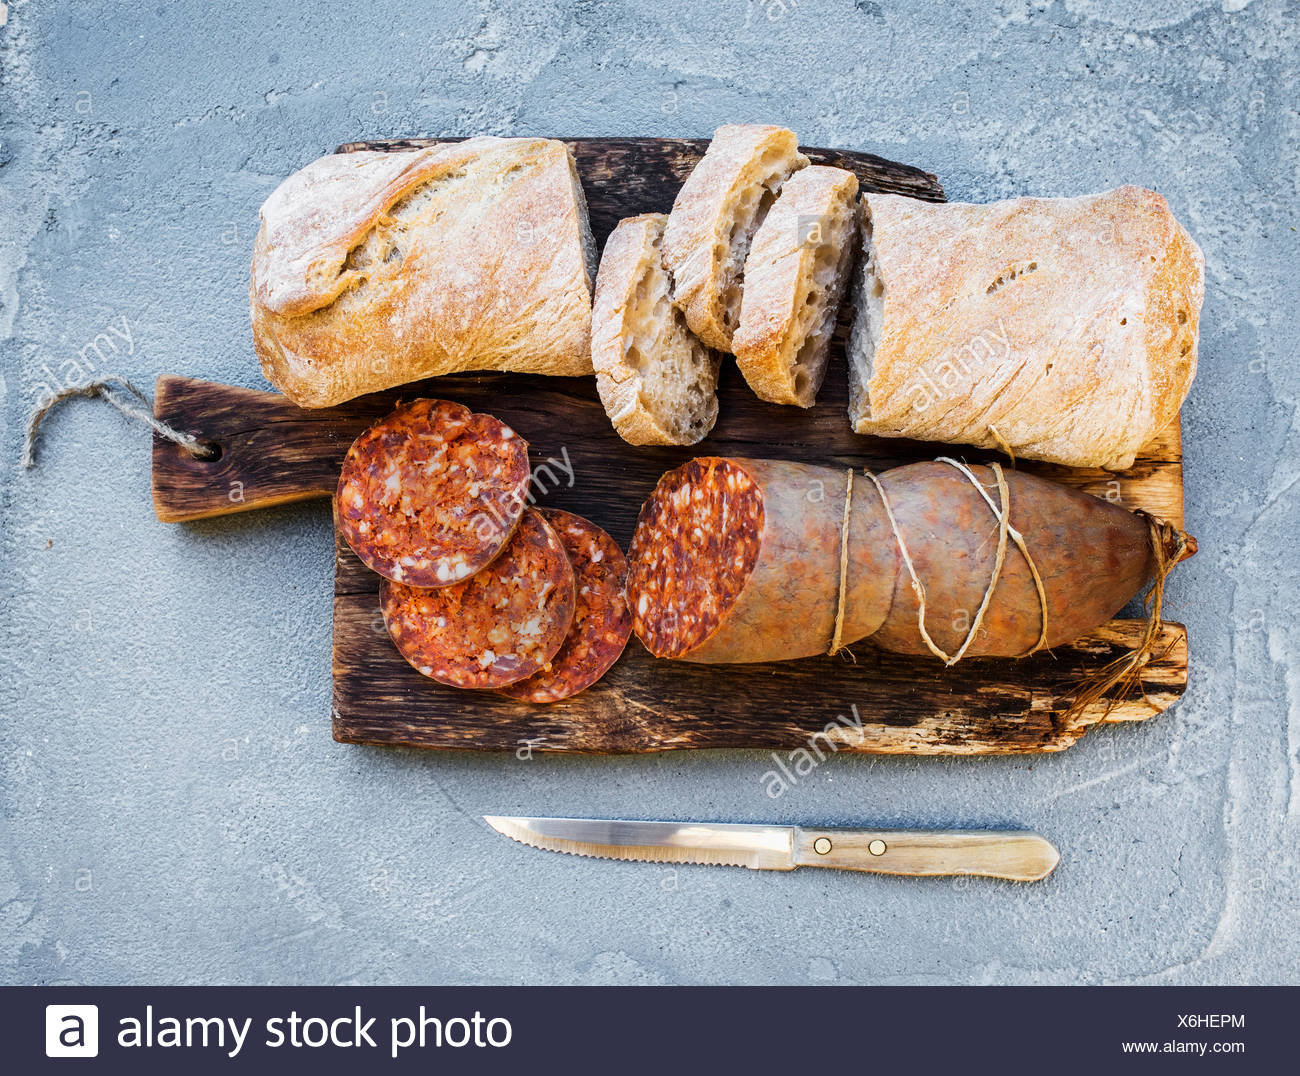 Wine snack set. Hungarian mangalica pork salami sausage and rustic bread on dark wooden board over a rough grey-blue concrete ba - Stock Image